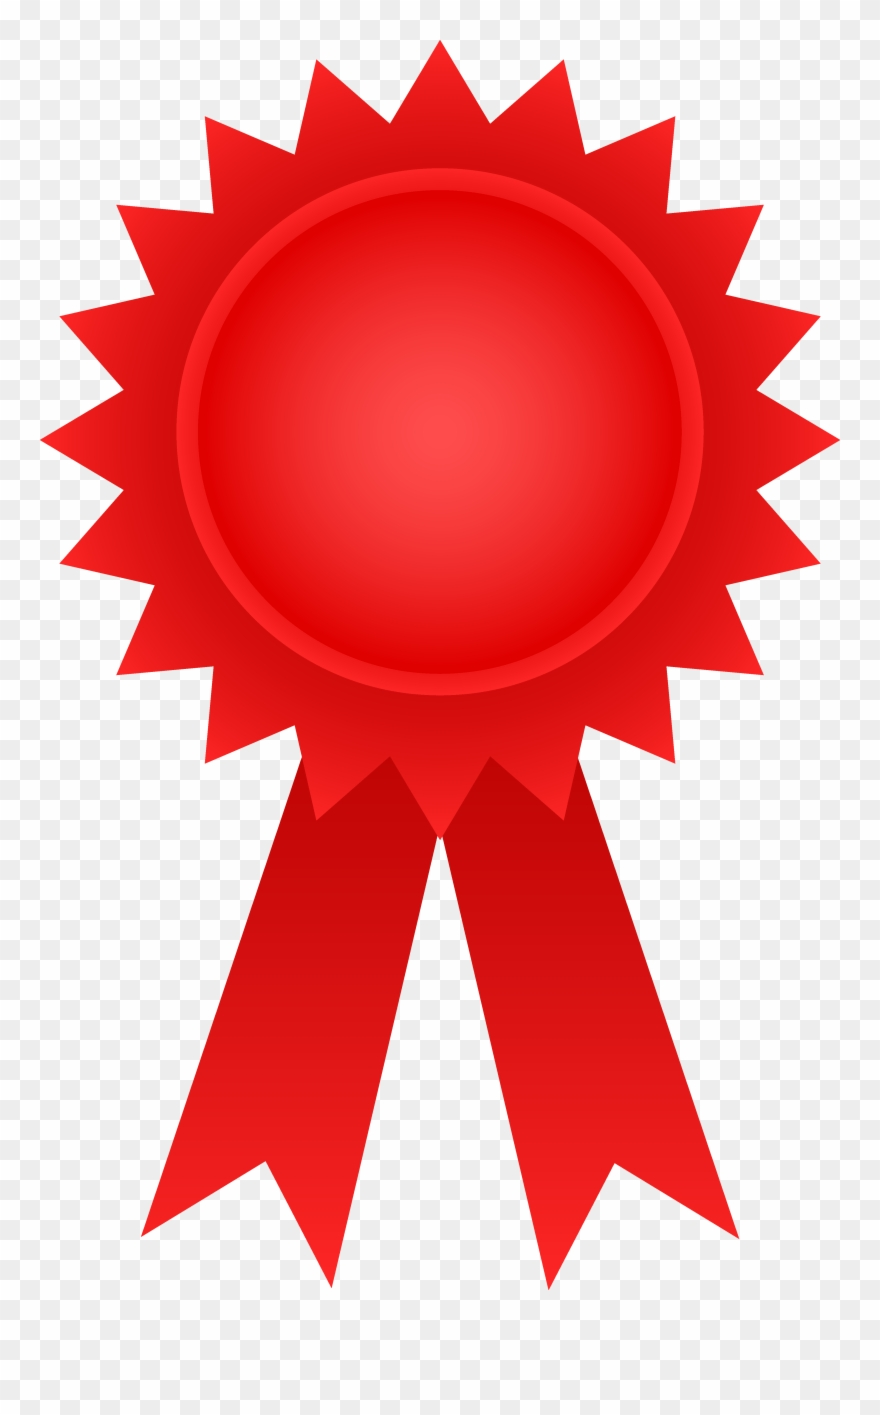 Red Award Ribbon.